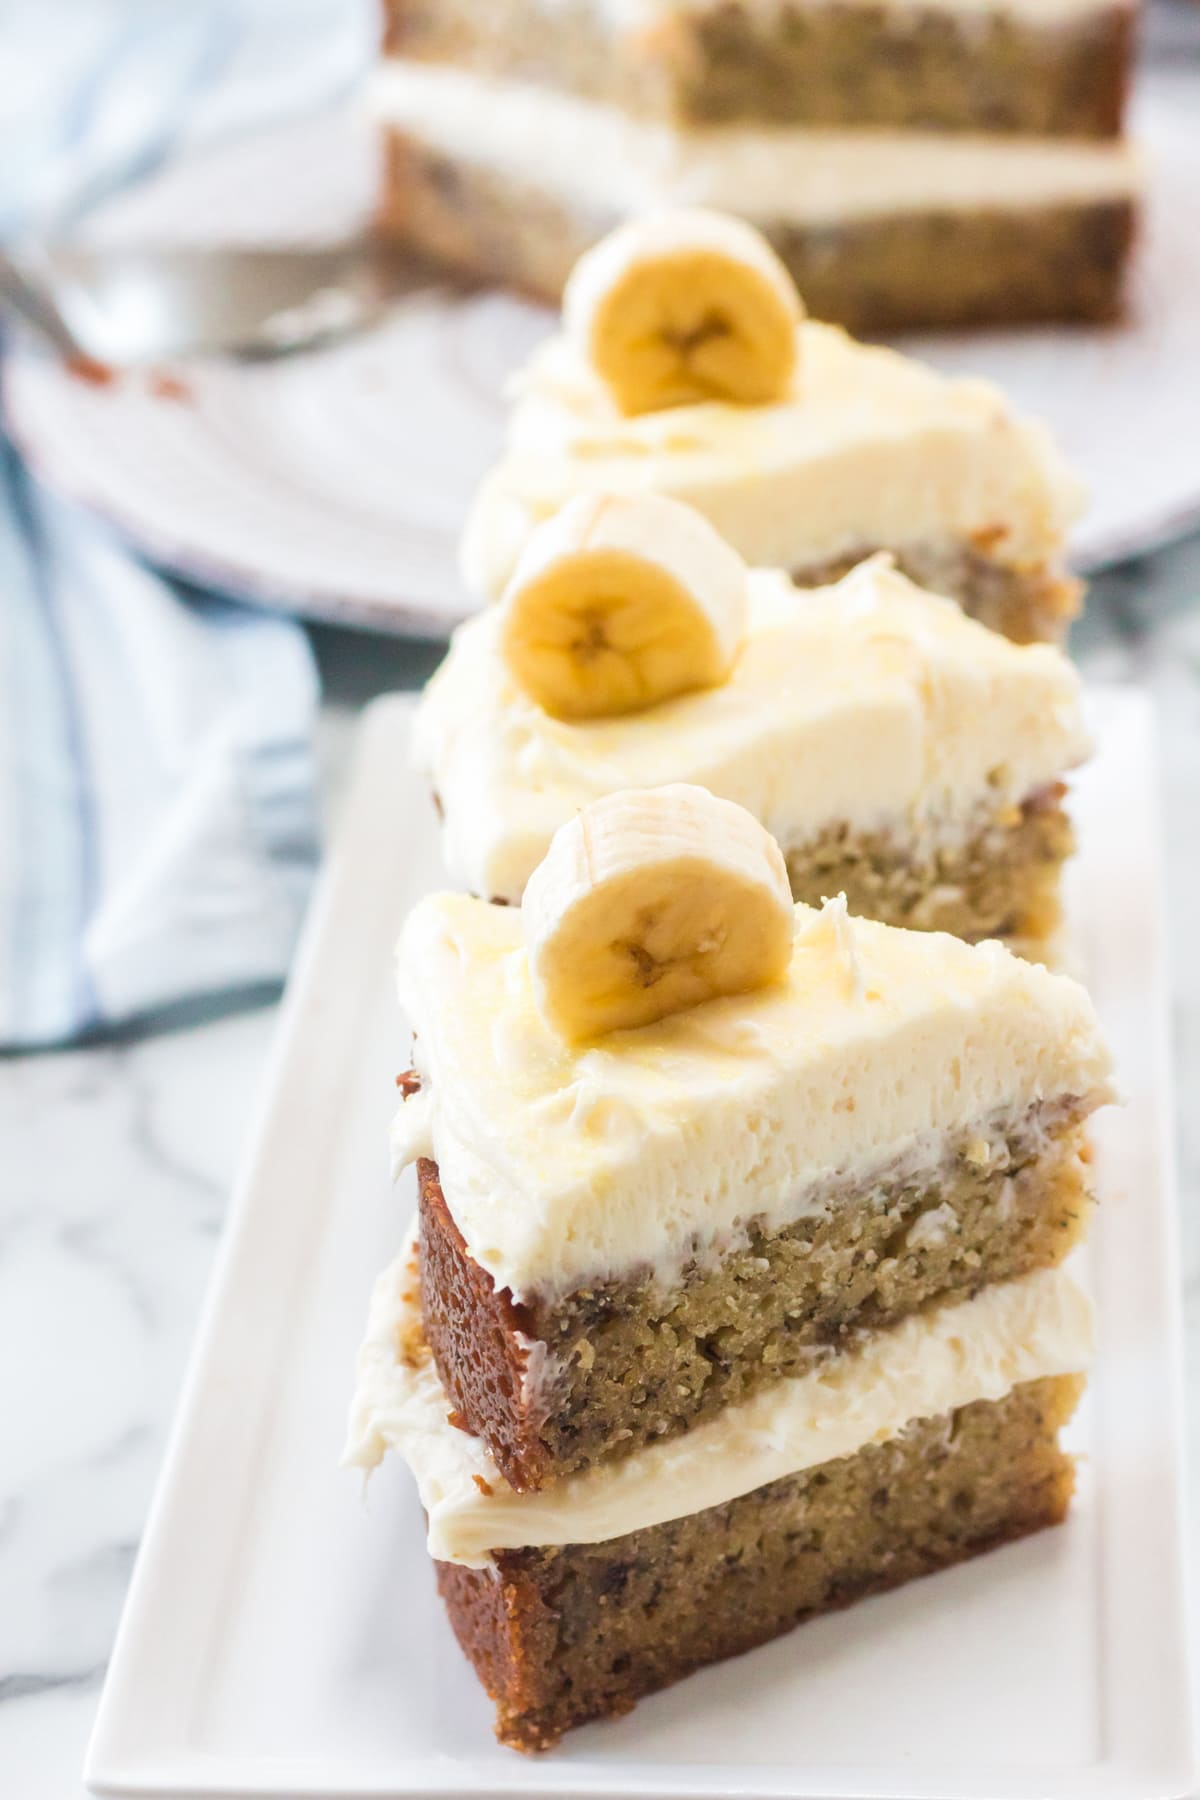 Banana cream cake slices on a plate